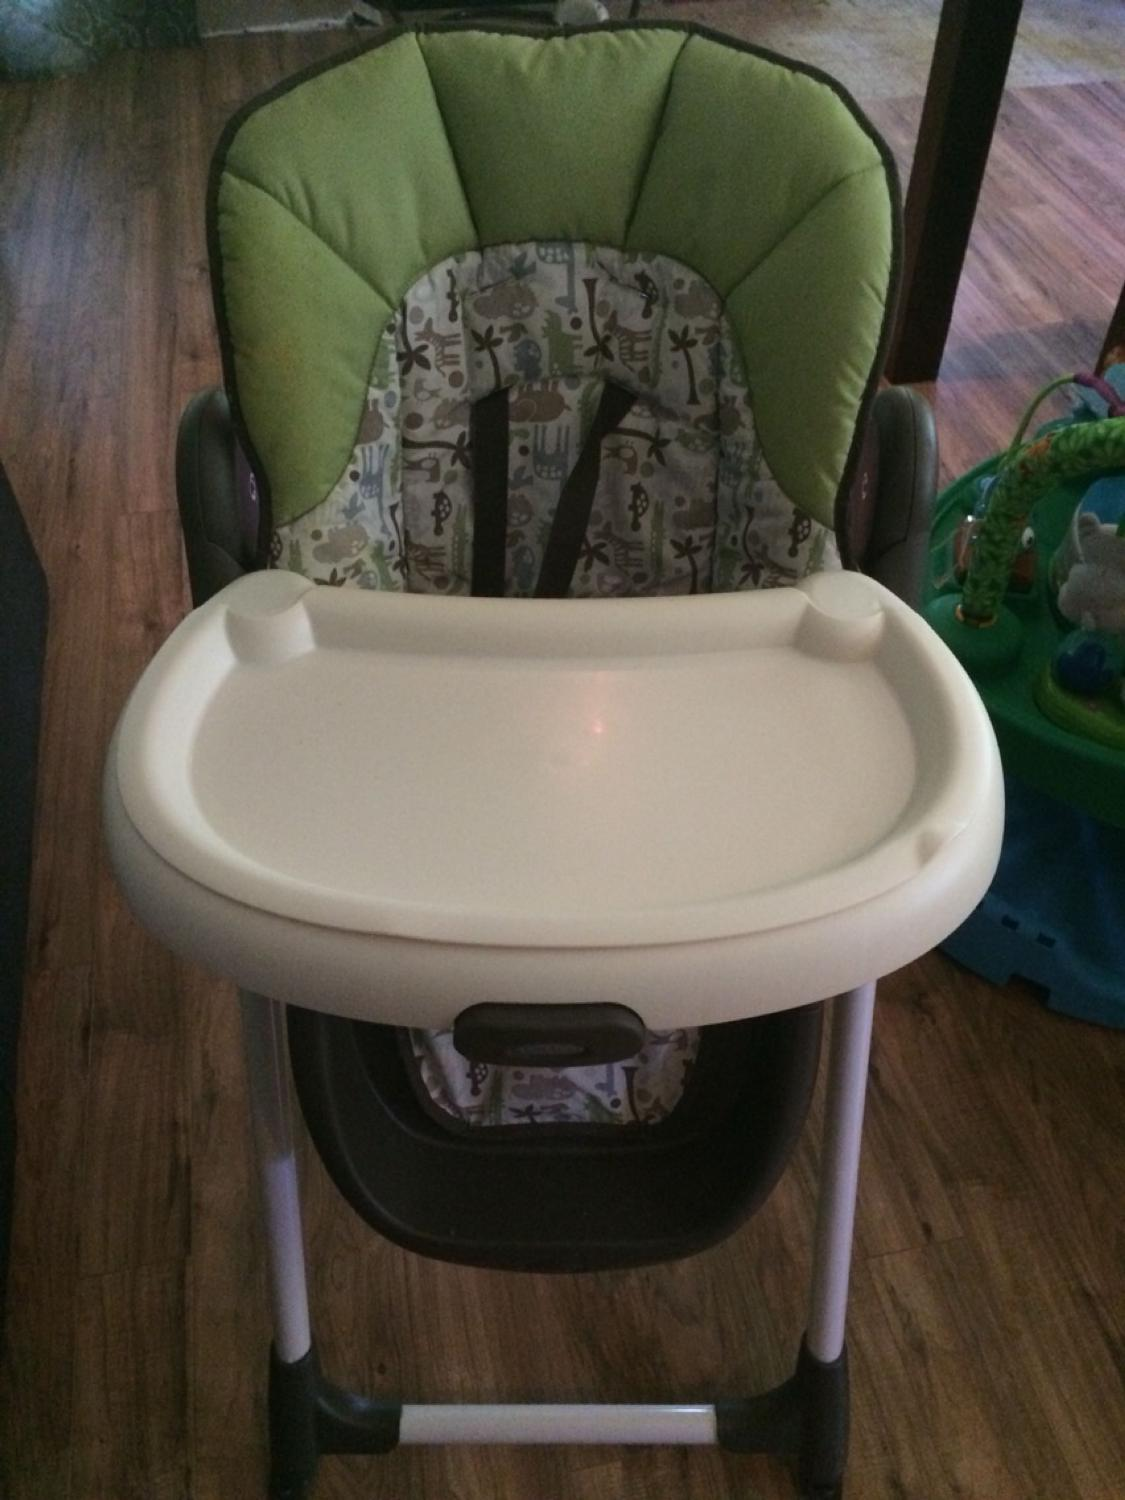 Graco meal time high chair - Find More Graco Meal Time High Chair Zoofari For Sale At Up To 90 Off Sarnia On